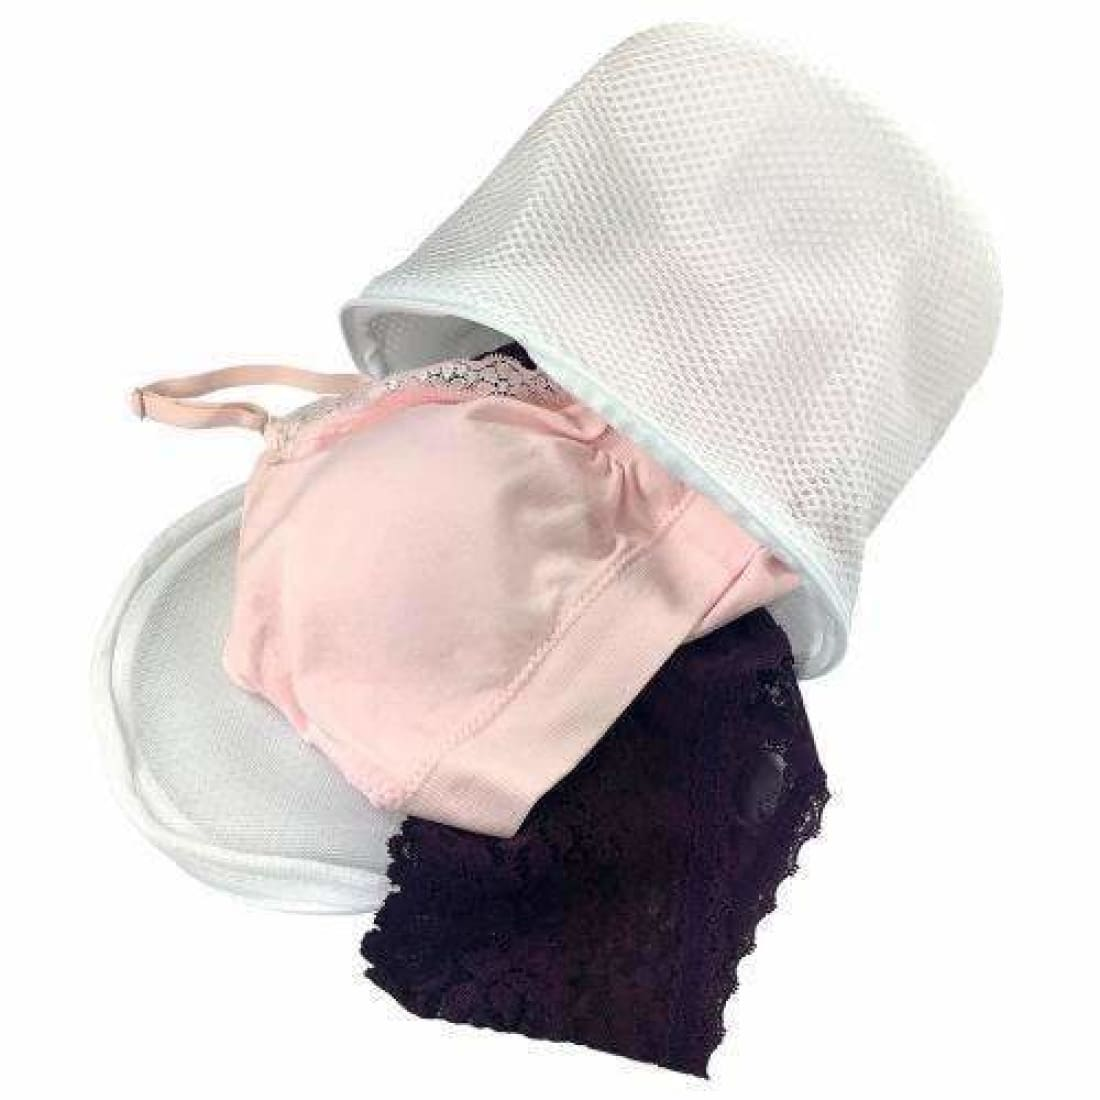 Undie Couture Structured Lingerie Bag Bras & Bra Sets